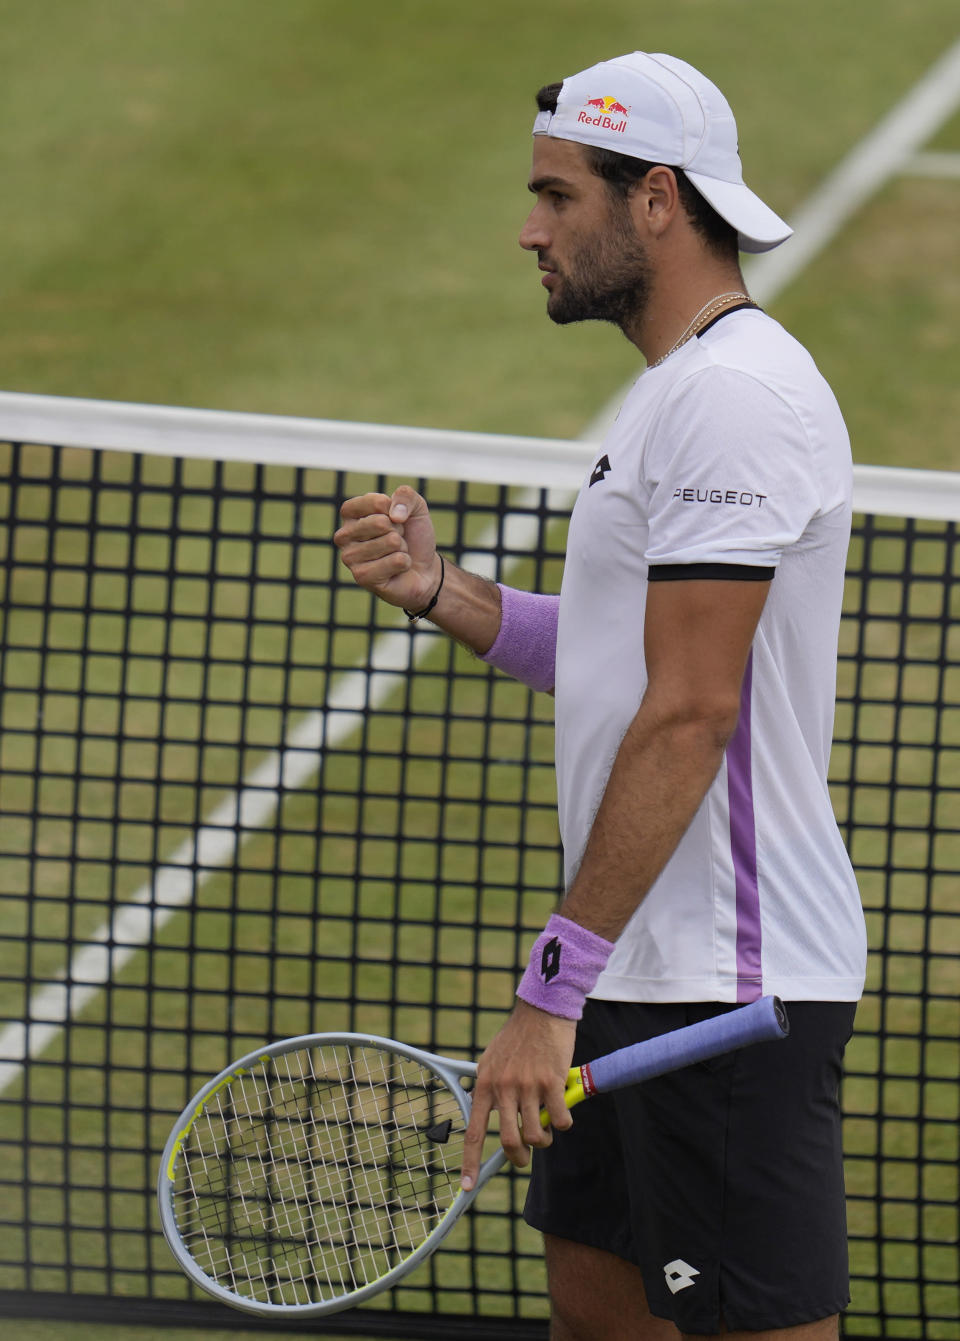 Matteo Berrettini of Italy celebrates winning at match point against Andy Murray of Britain during their singles tennis match at the Queen's Club tournament in London, Thursday, June 17, 2021. (AP Photo/Kirsty Wigglesworth)